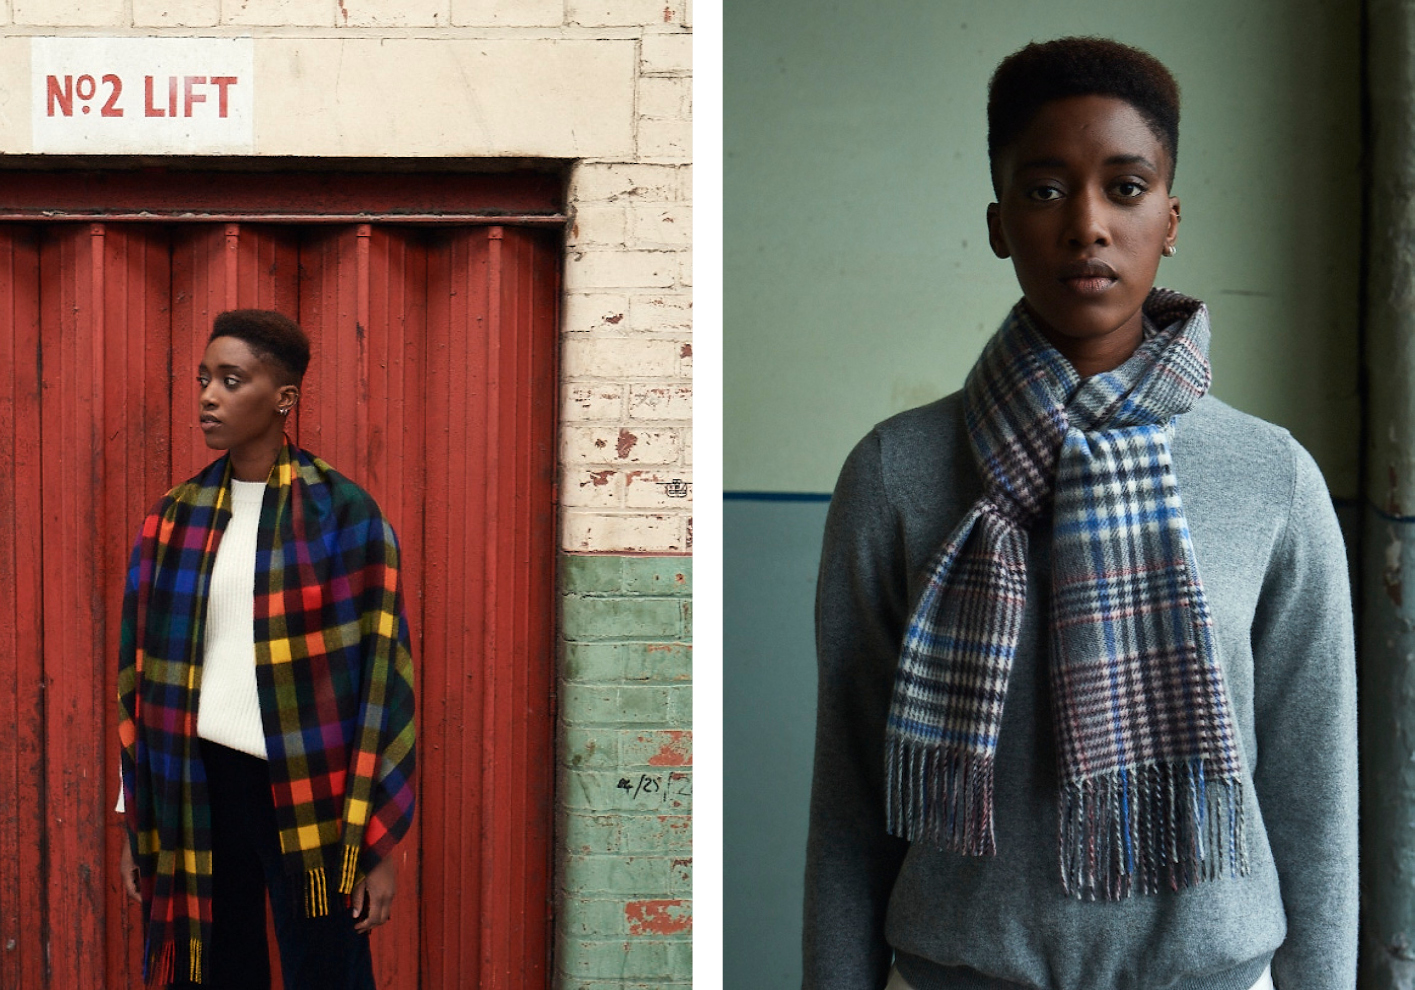 Joshua Ellis weaves the finest scarves, stoles and throws